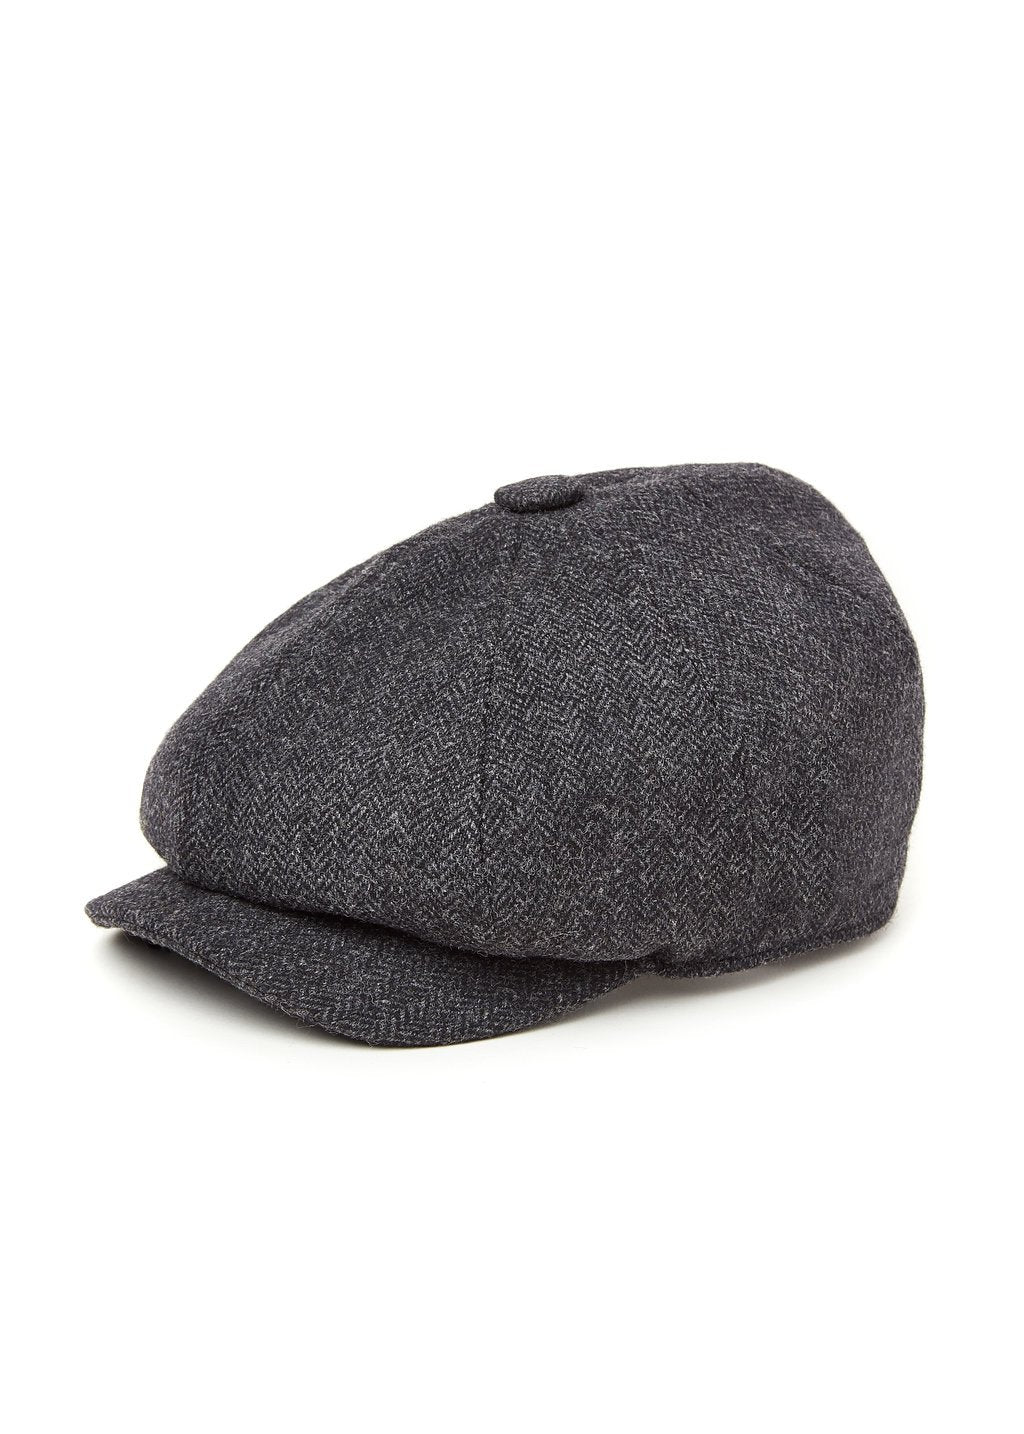 Baker Boy Cap (Soft Graphite)